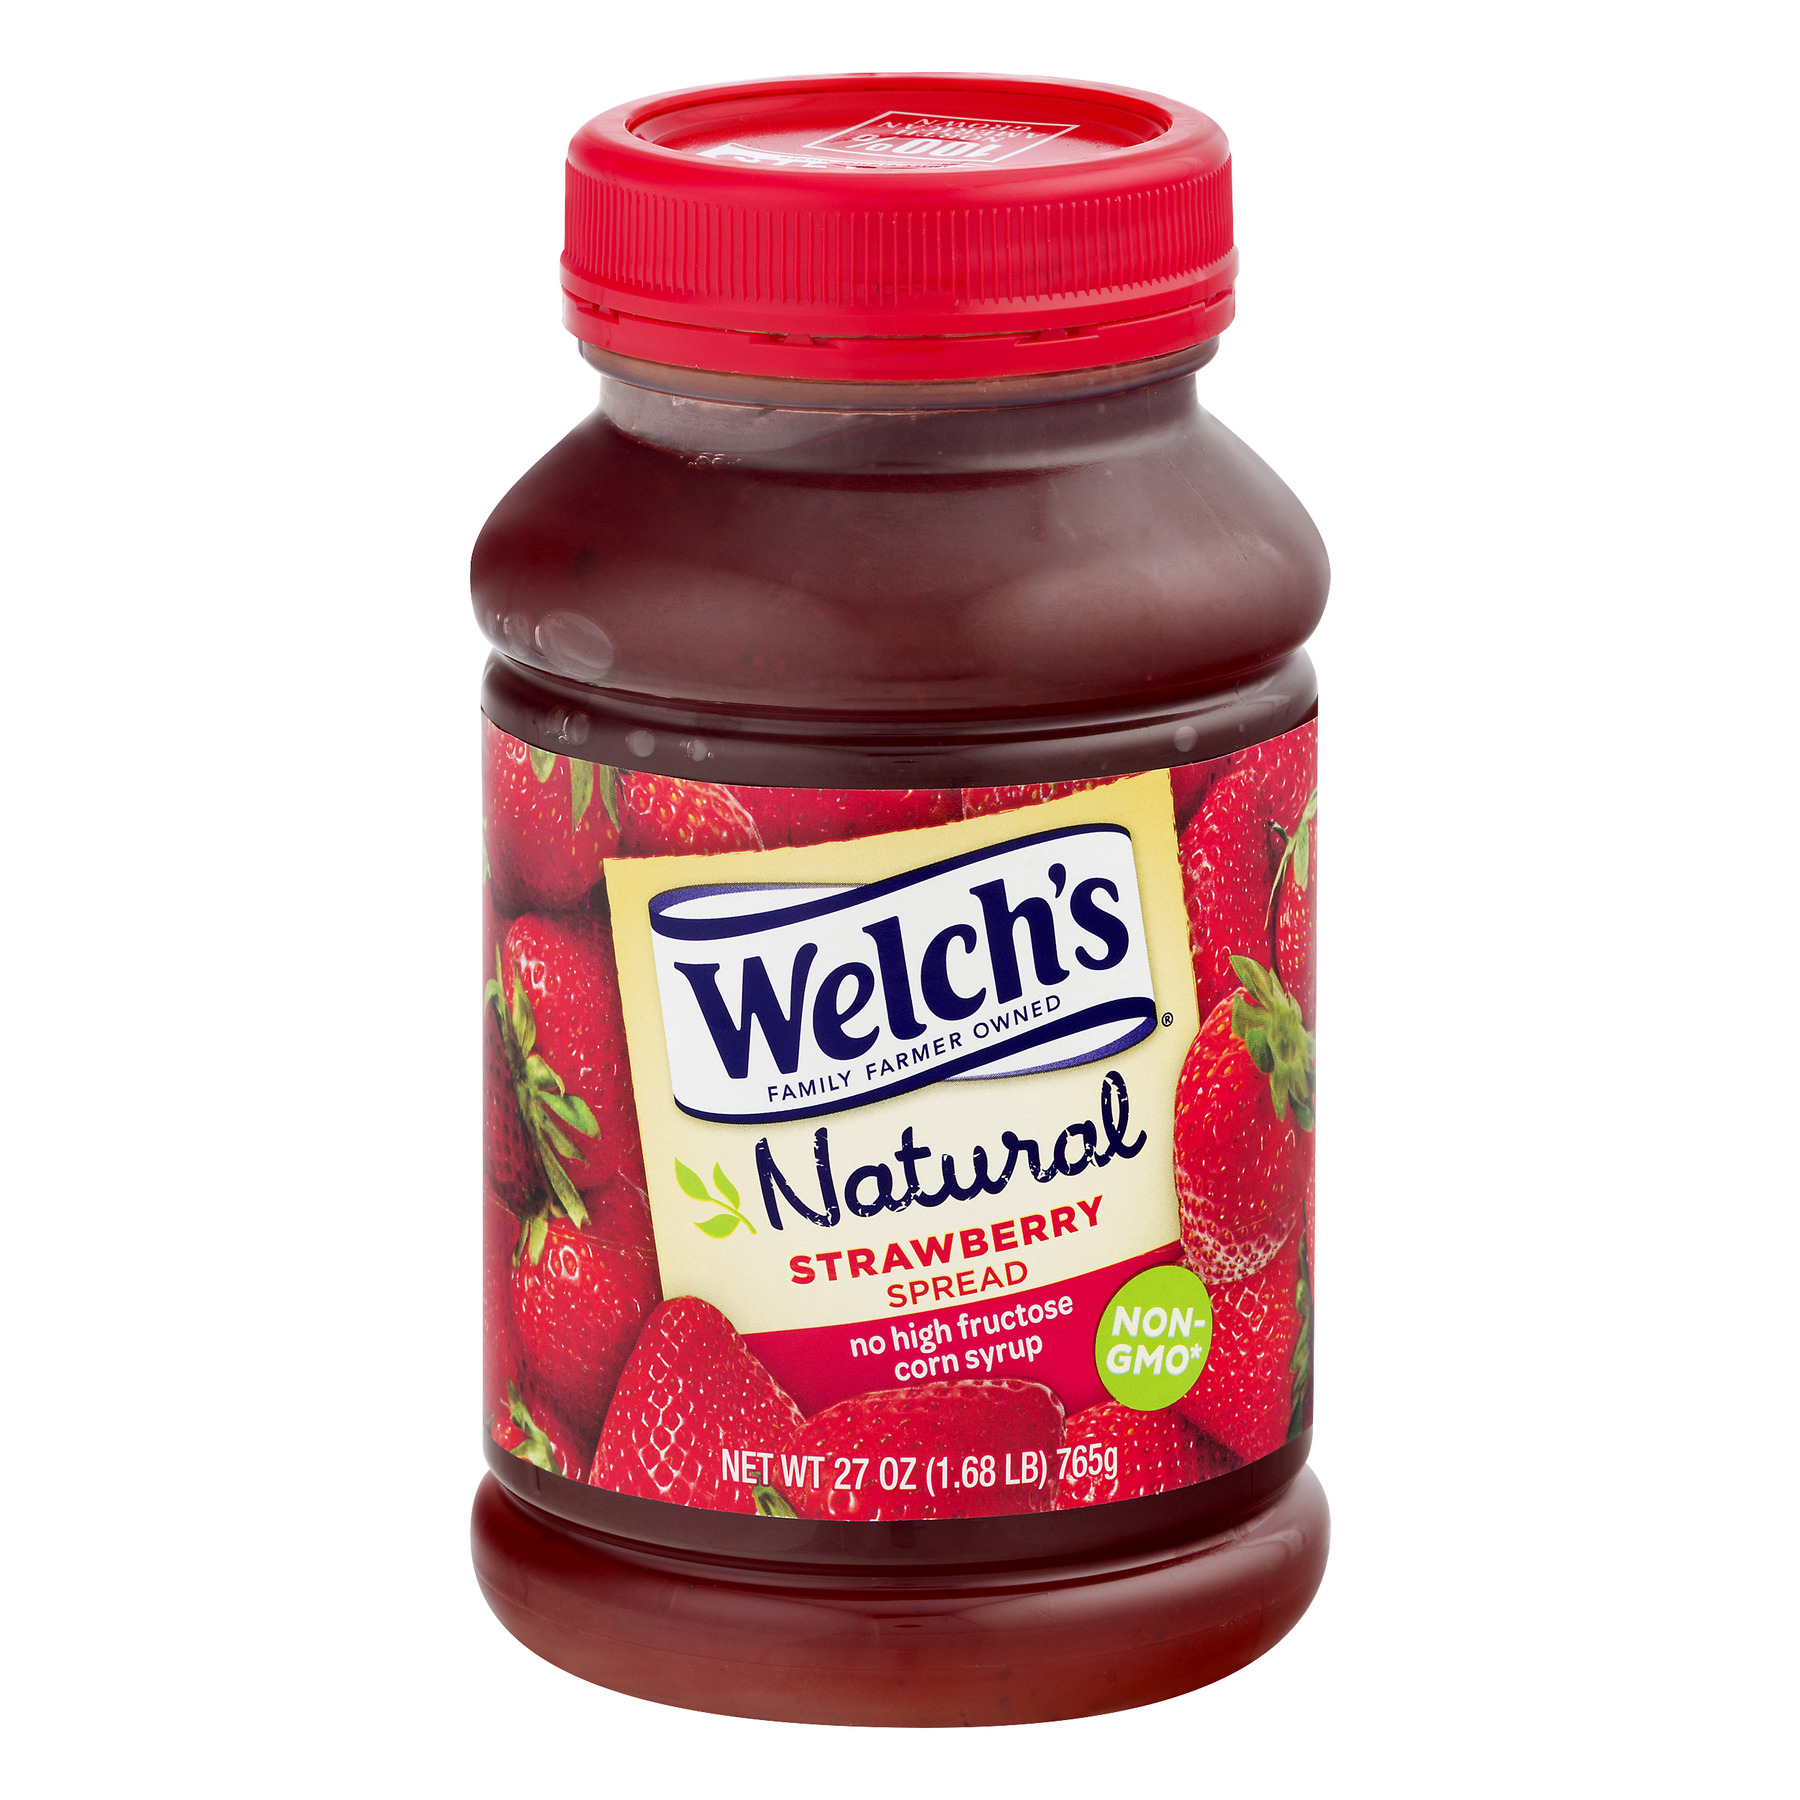 Welch's Natural Spread, Strawberry, 27 Oz, 1 Count